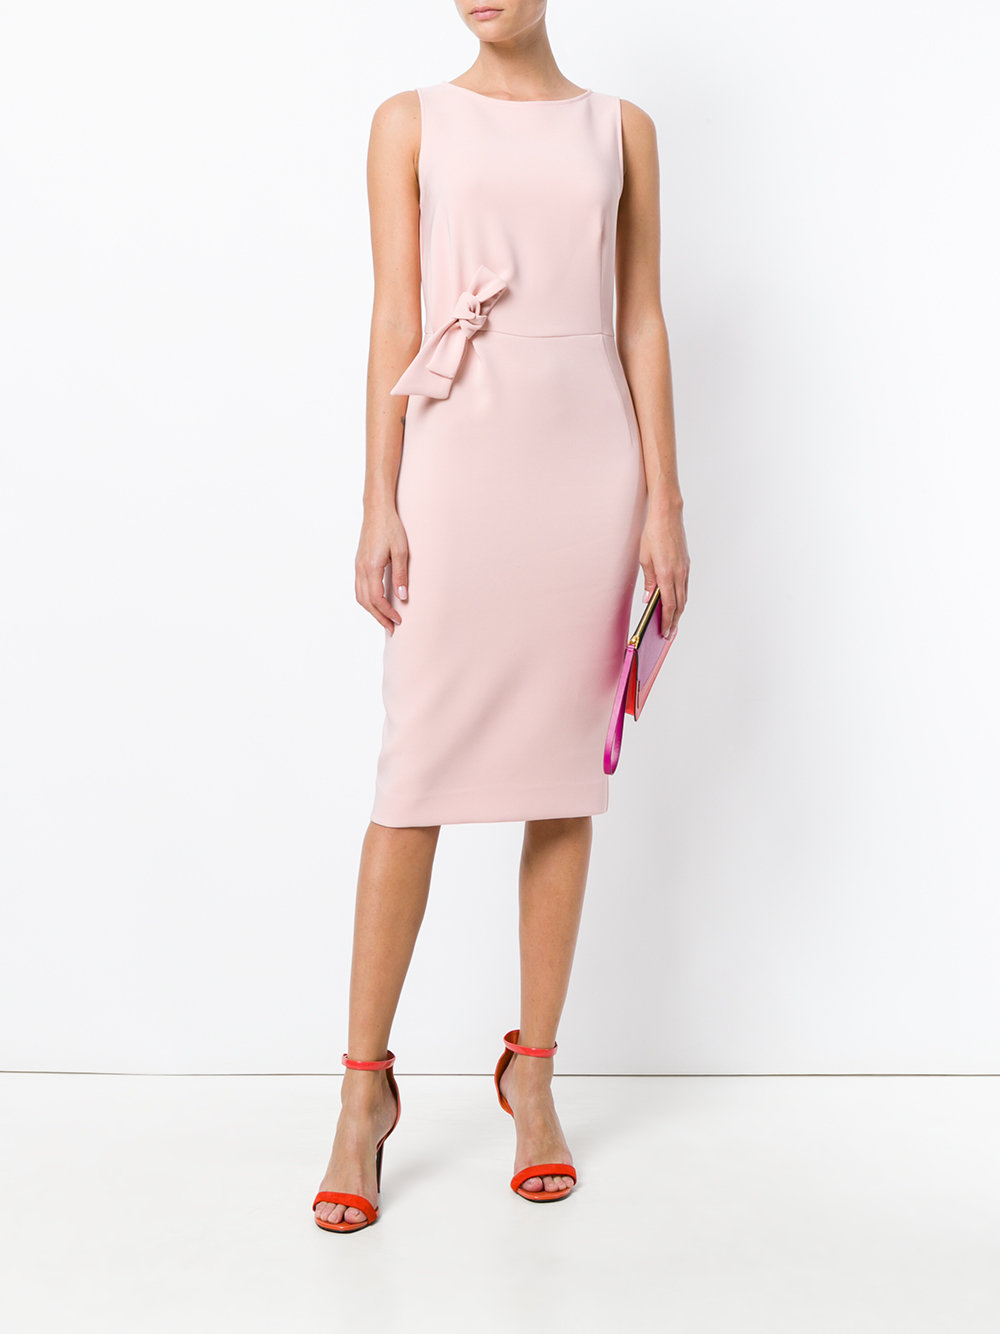 P.A.R.O.S.H. bow dress in pink